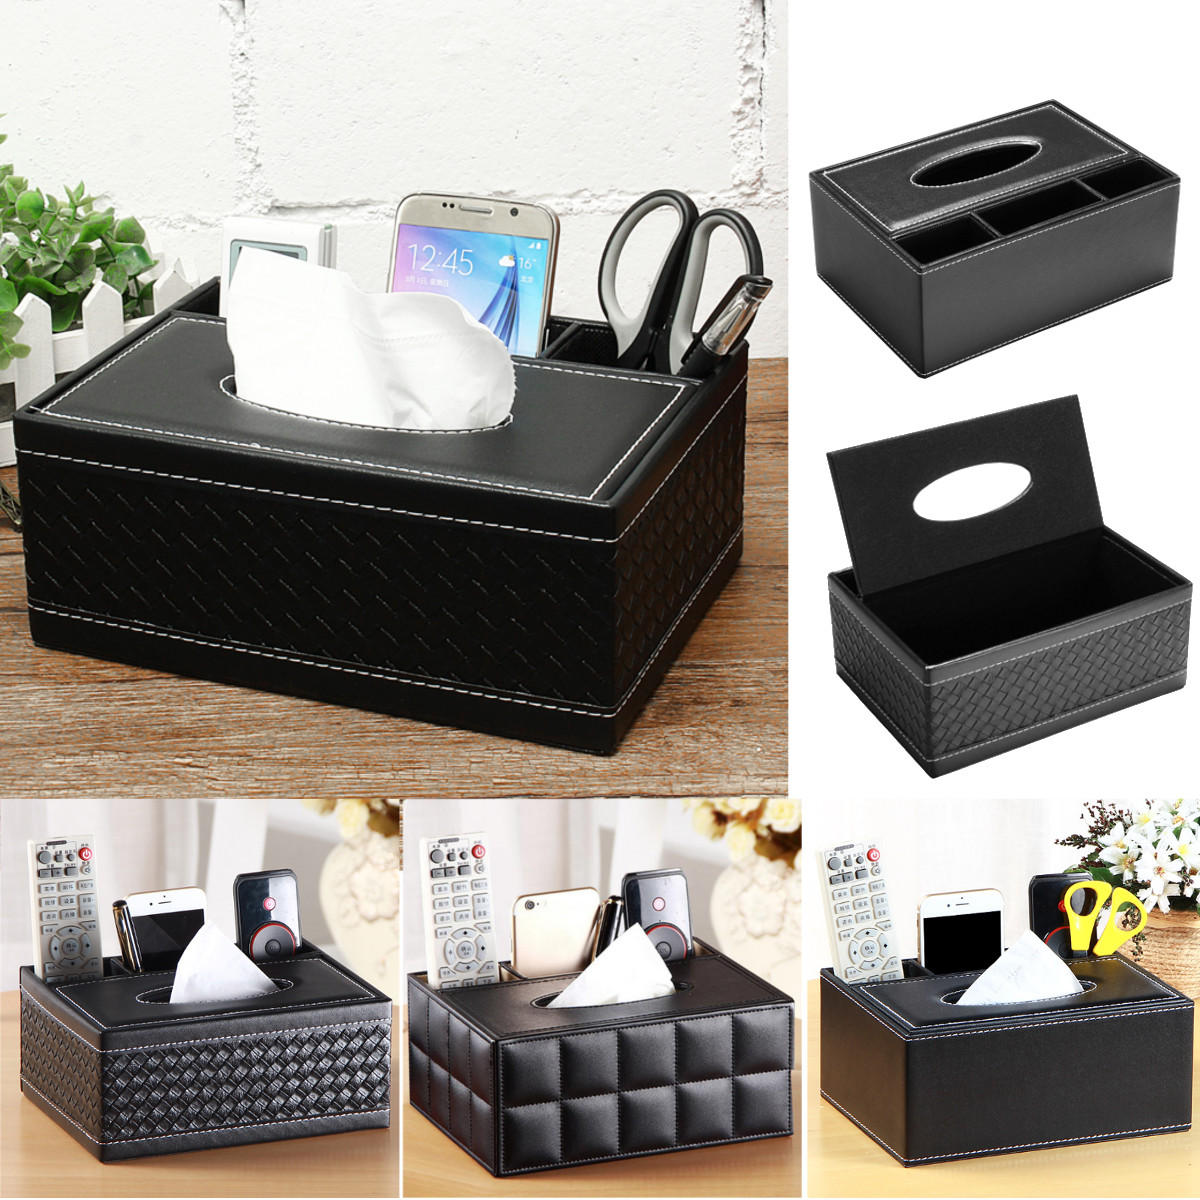 PU Leather Tissue Box Cover Napkin Case Holder Tabletop Organizer Decor